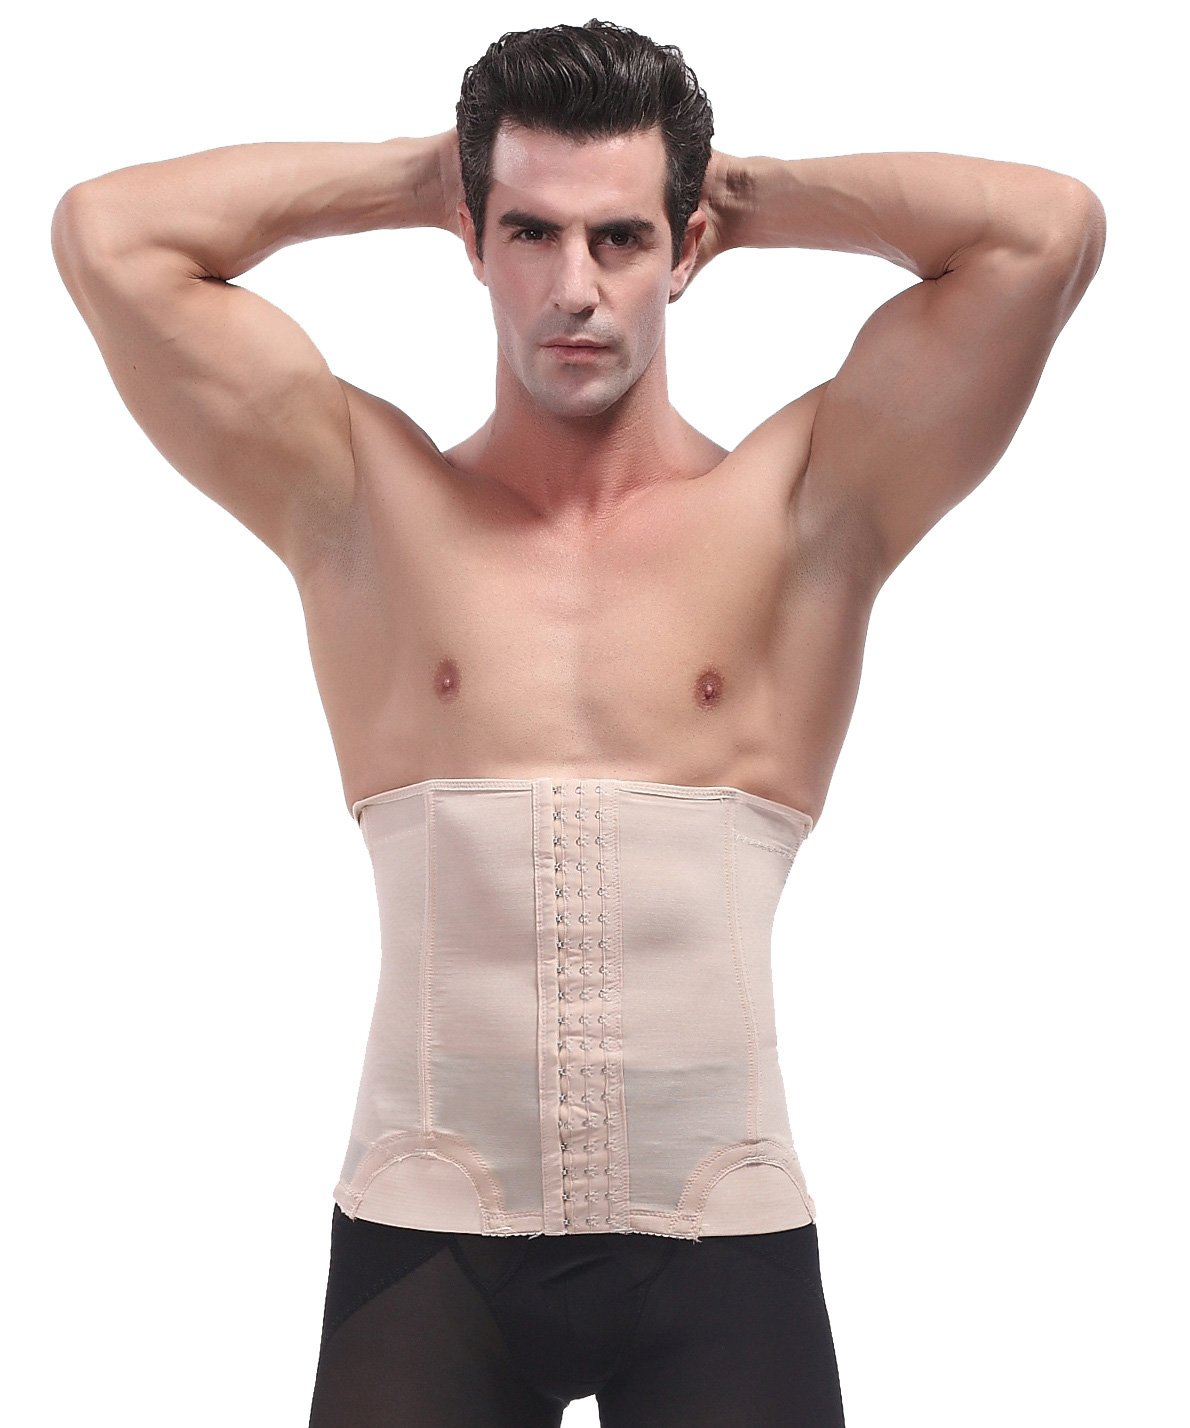 Panegy Men's Waist Trainer Girdle Mesh Beer Belly Trimmer with Adjustable Hooks HJLFS3239-3244